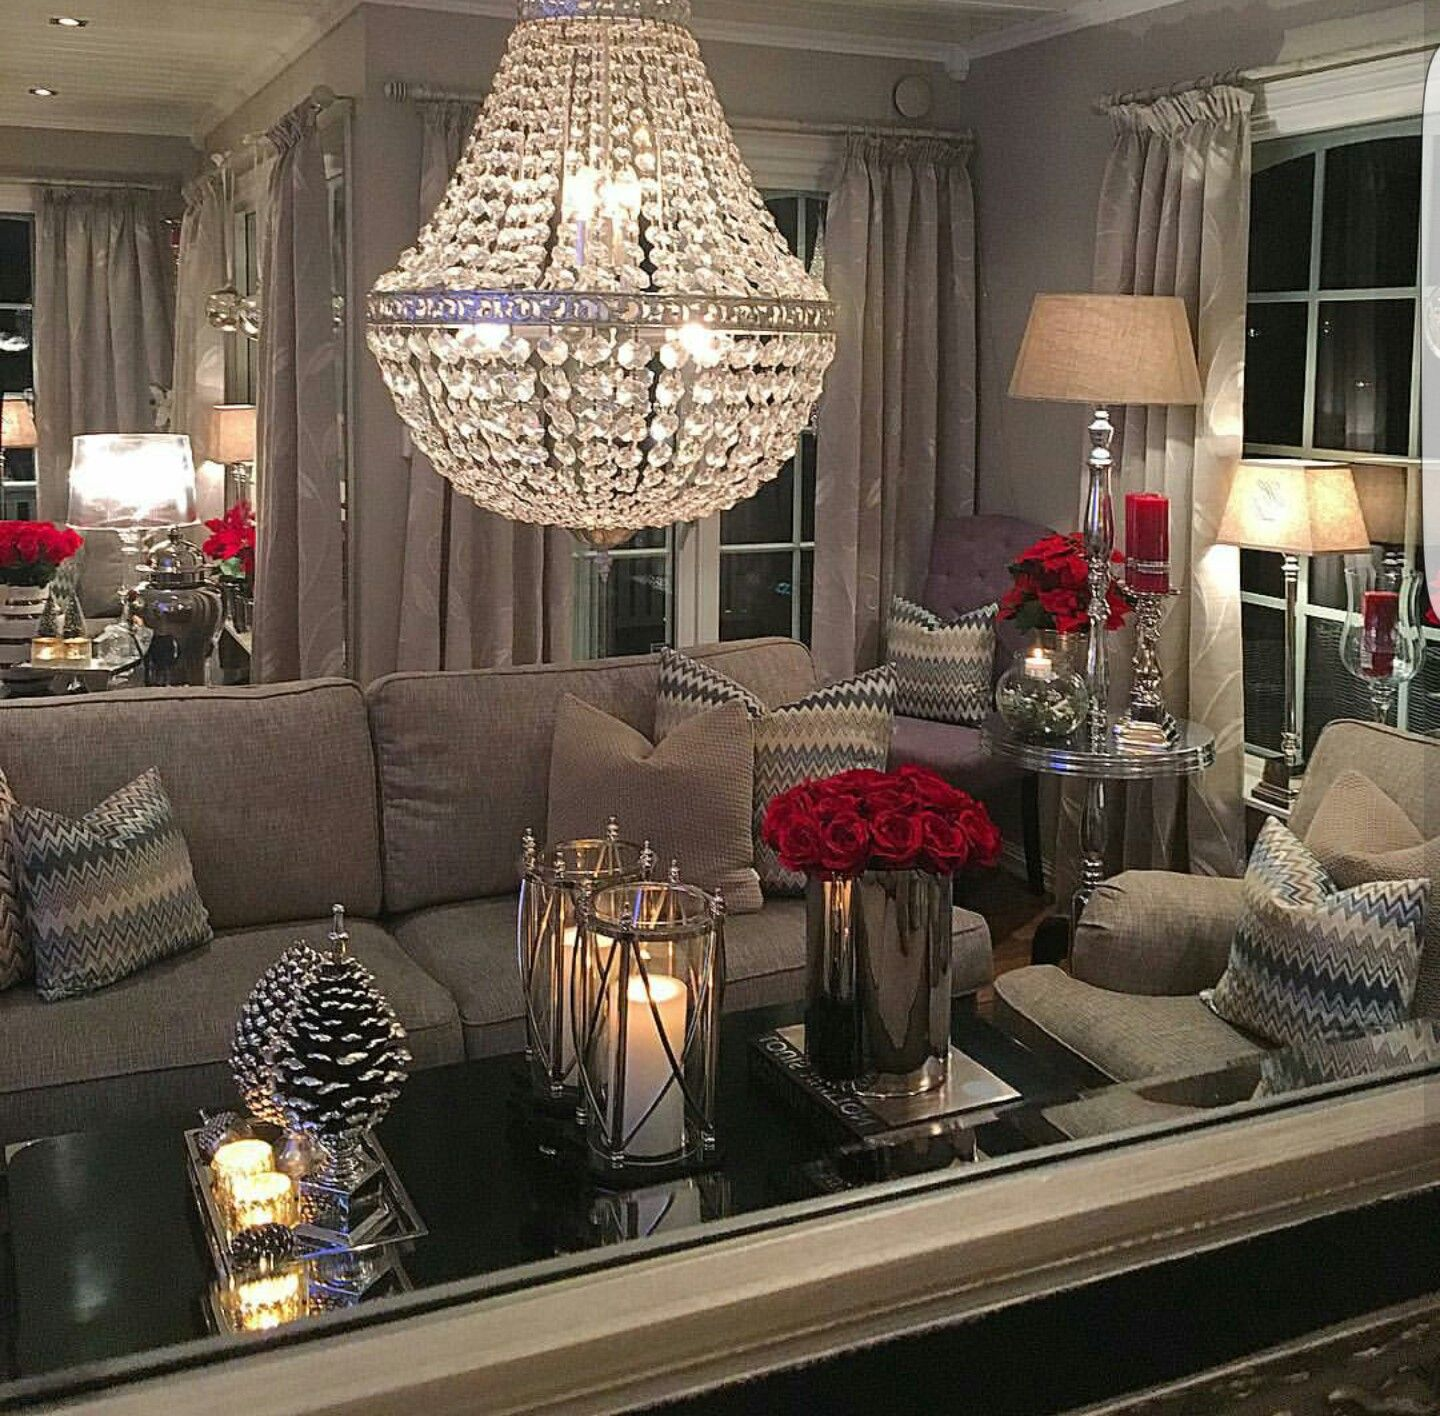 What Lovely Room I Love The Red Accents With The Neutral Pallet